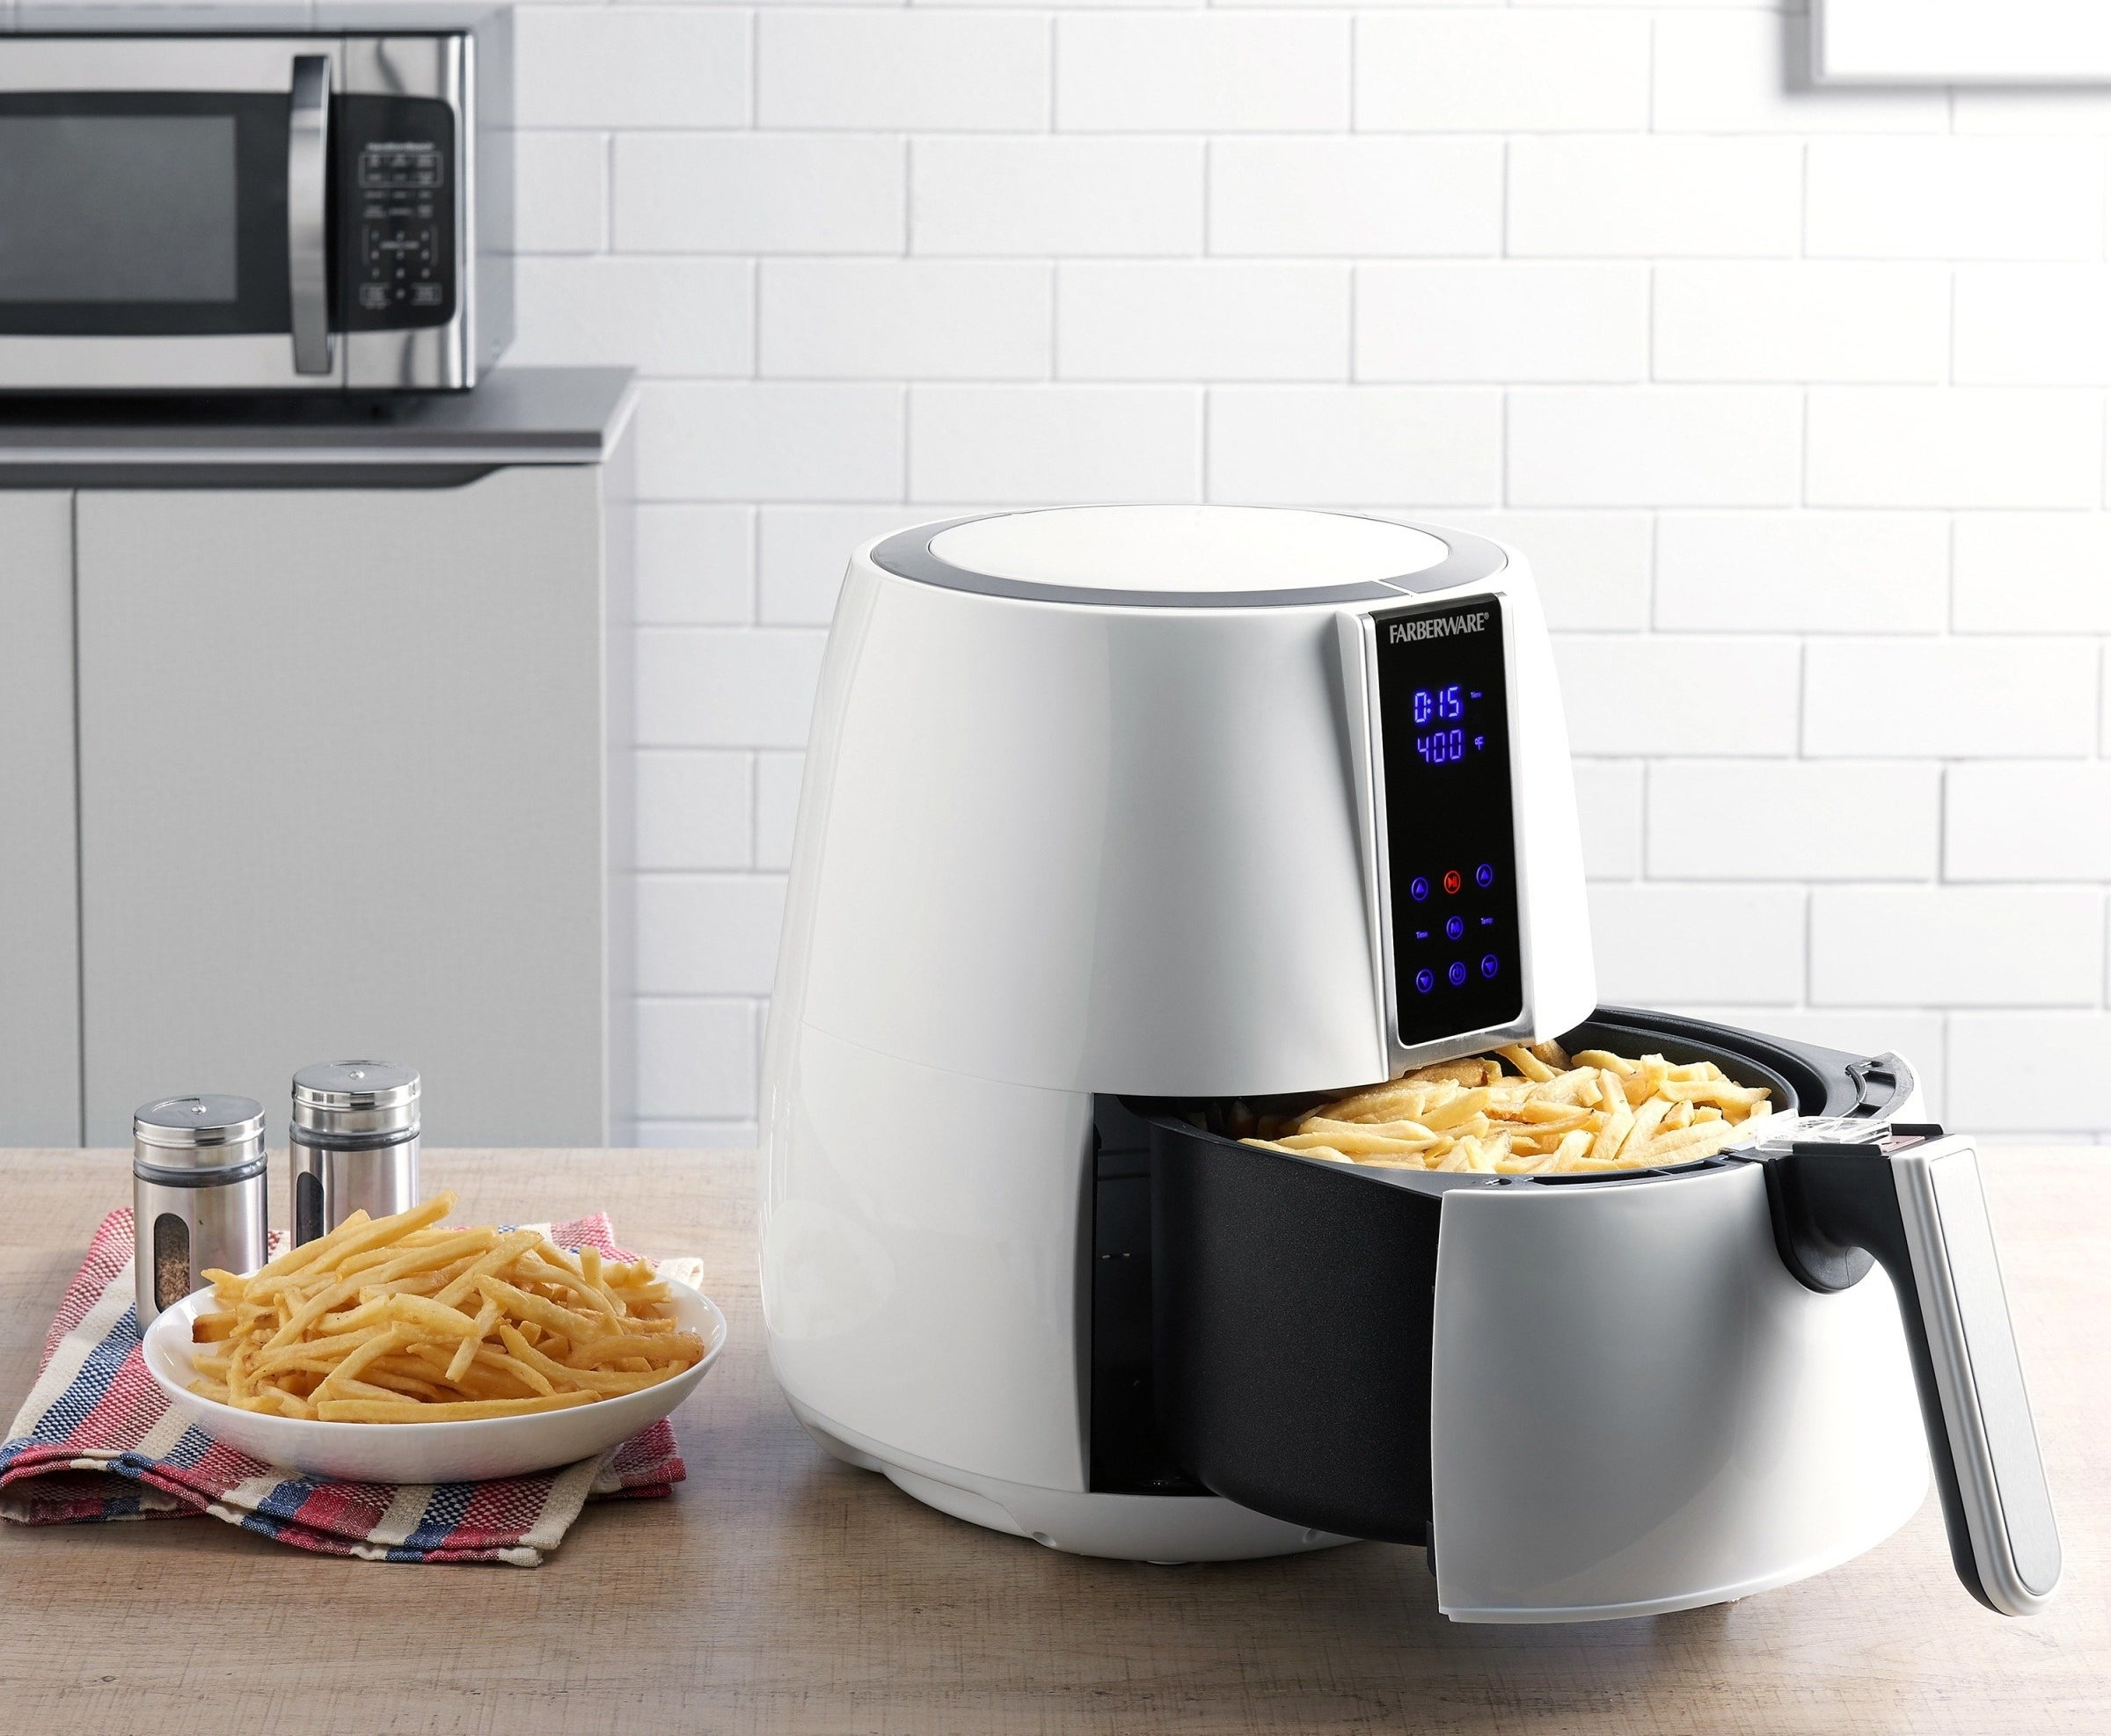 The air fryer in white making french fries